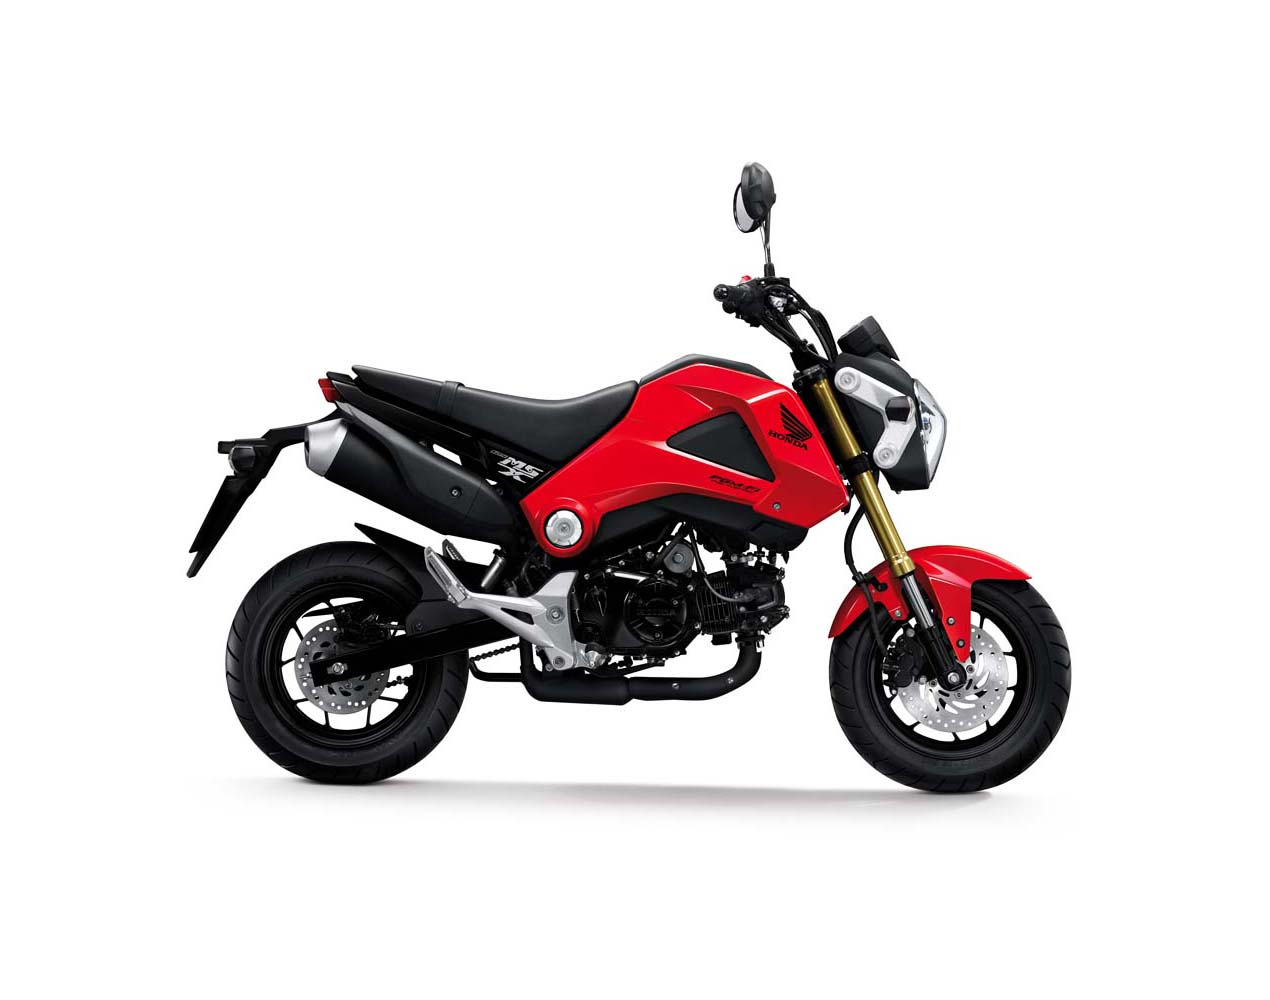 2014 Honda Grom Perfect Small City Motorcycle